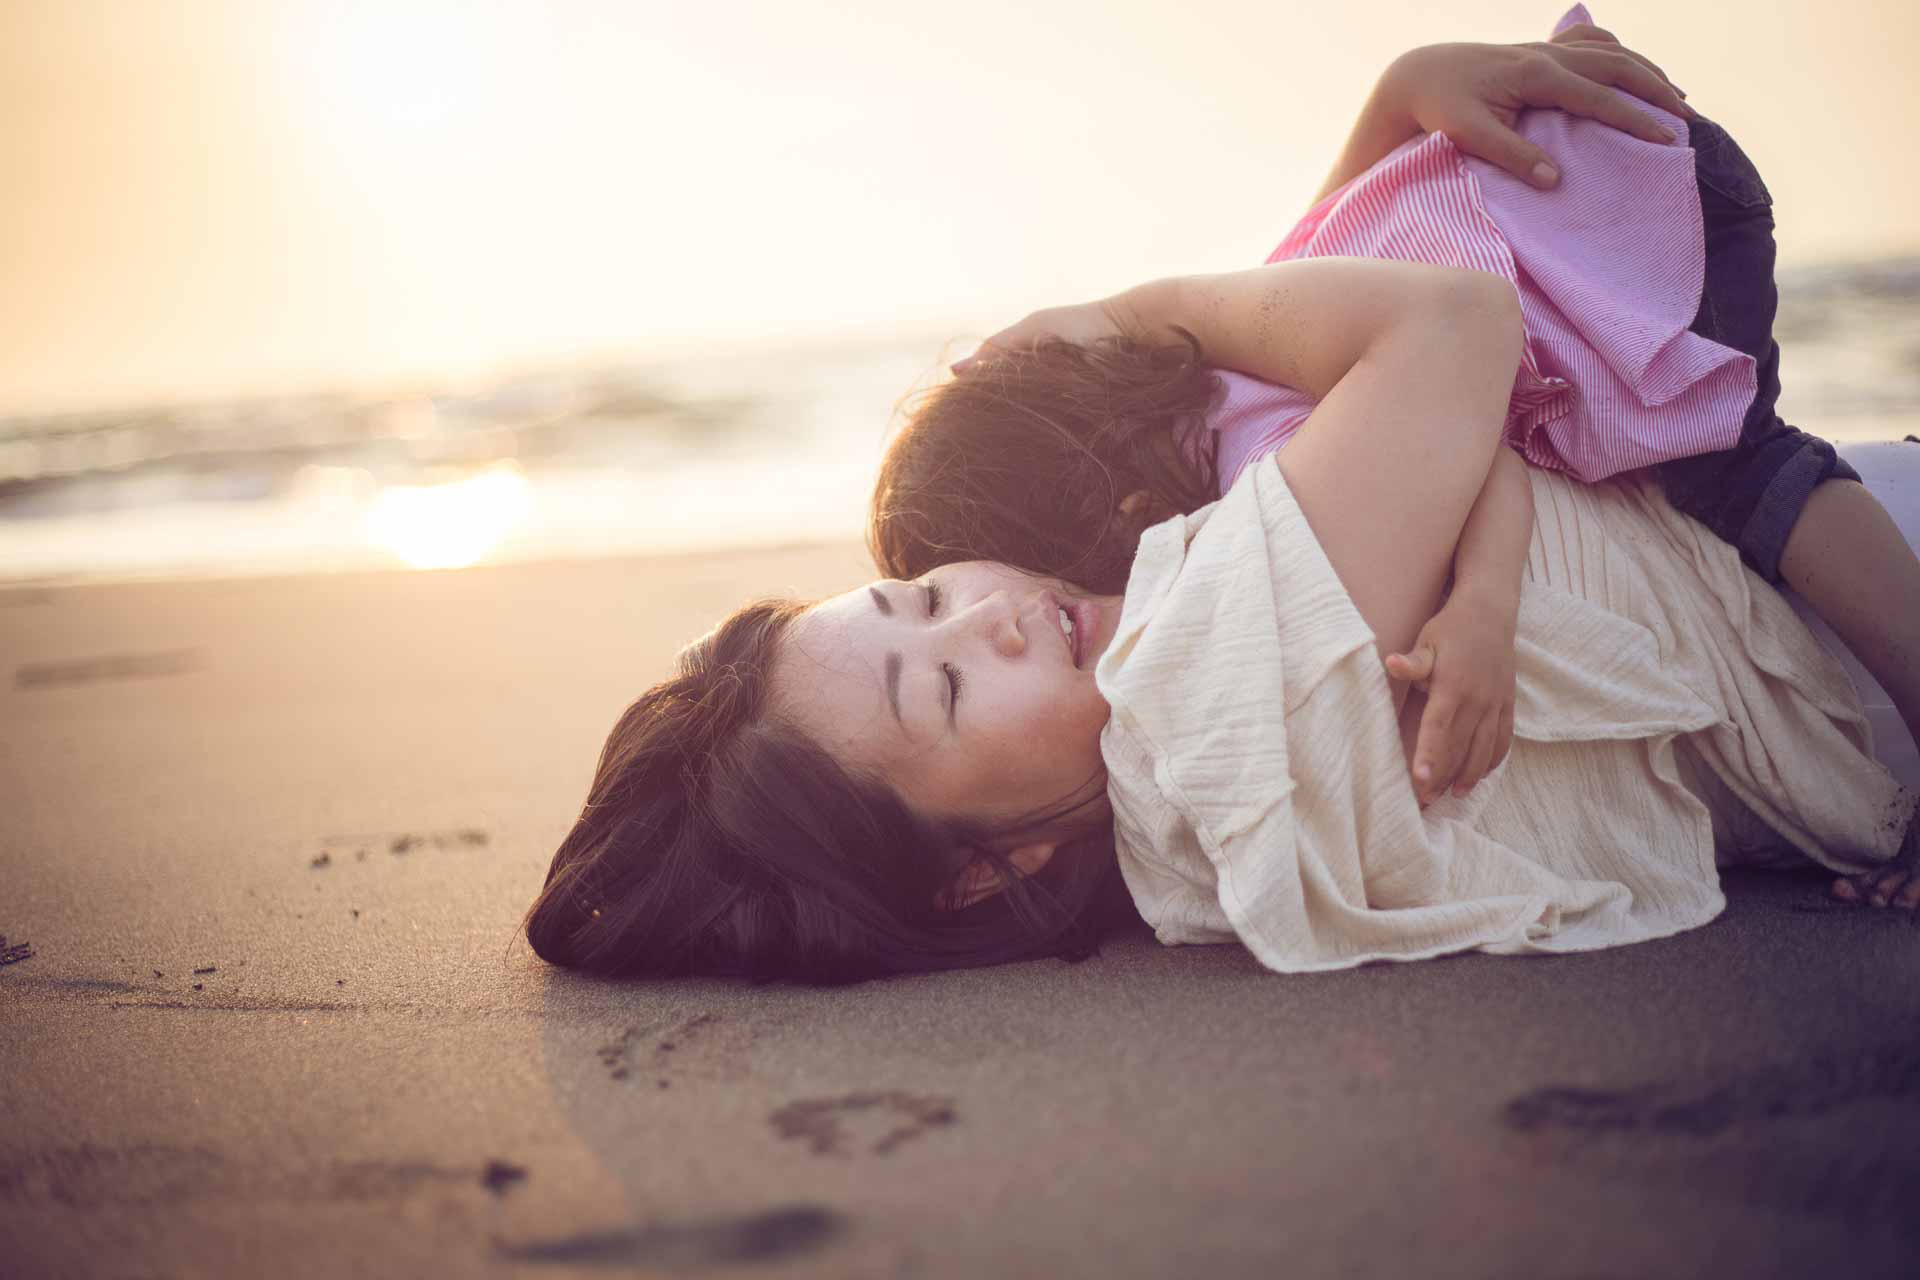 Mama & Tochter am Strand | Kinderfotos